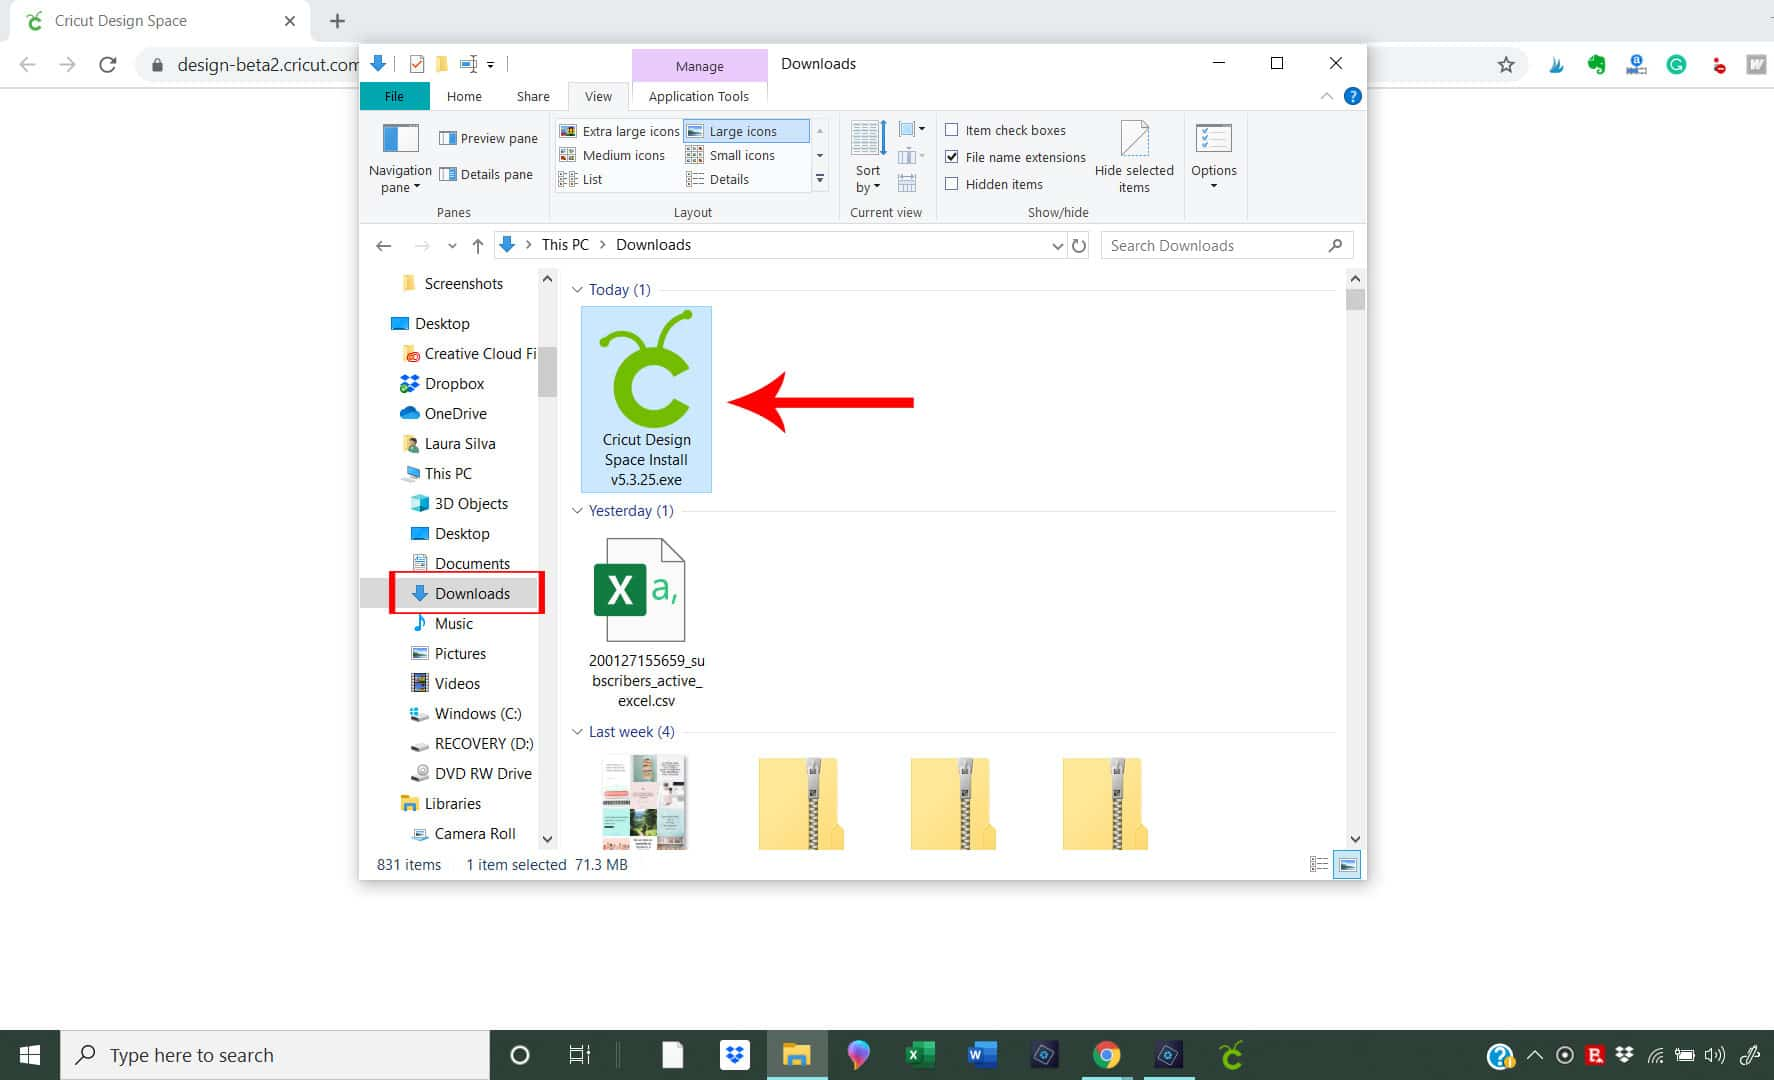 download folder to install file